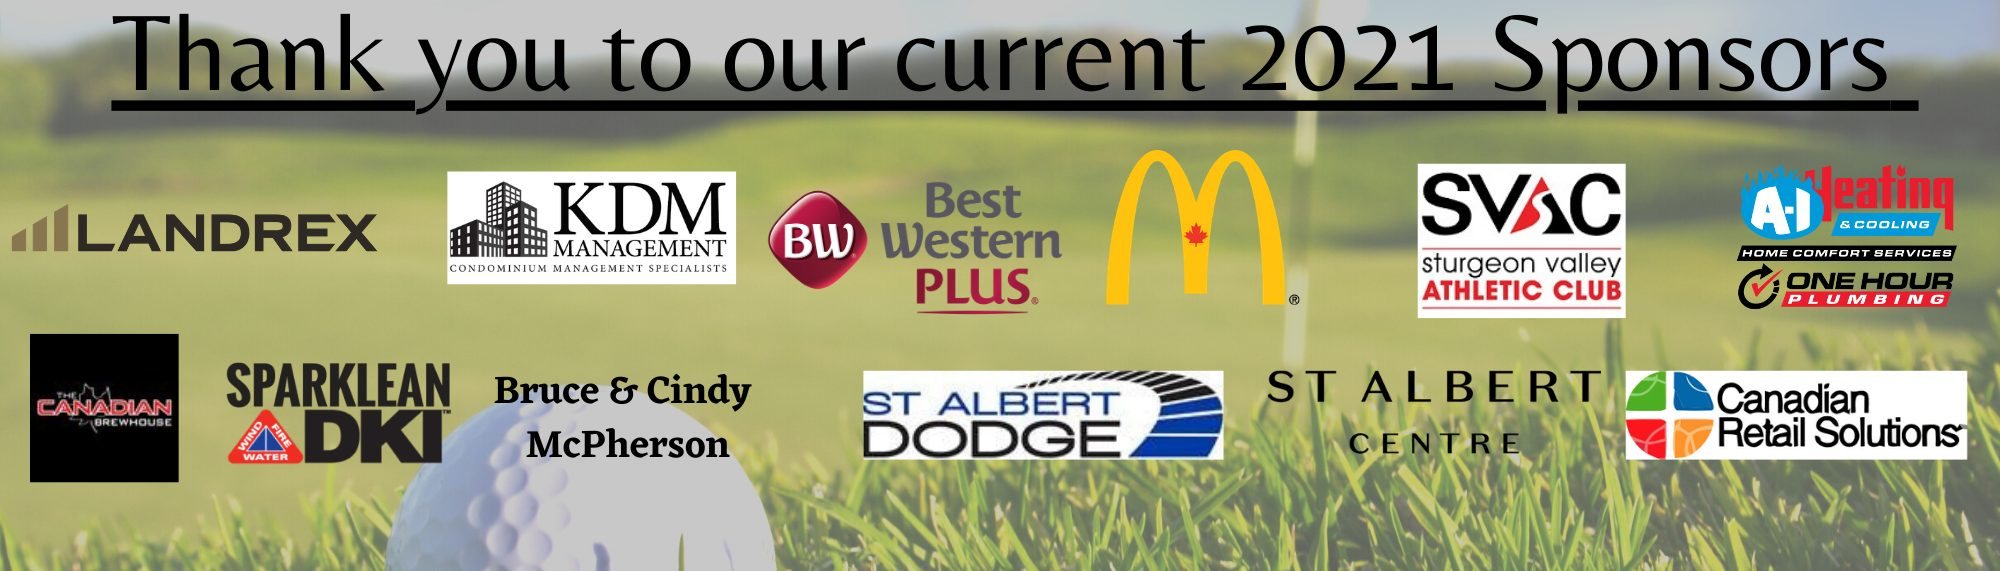 Thank you to our Current Sponsors March 31